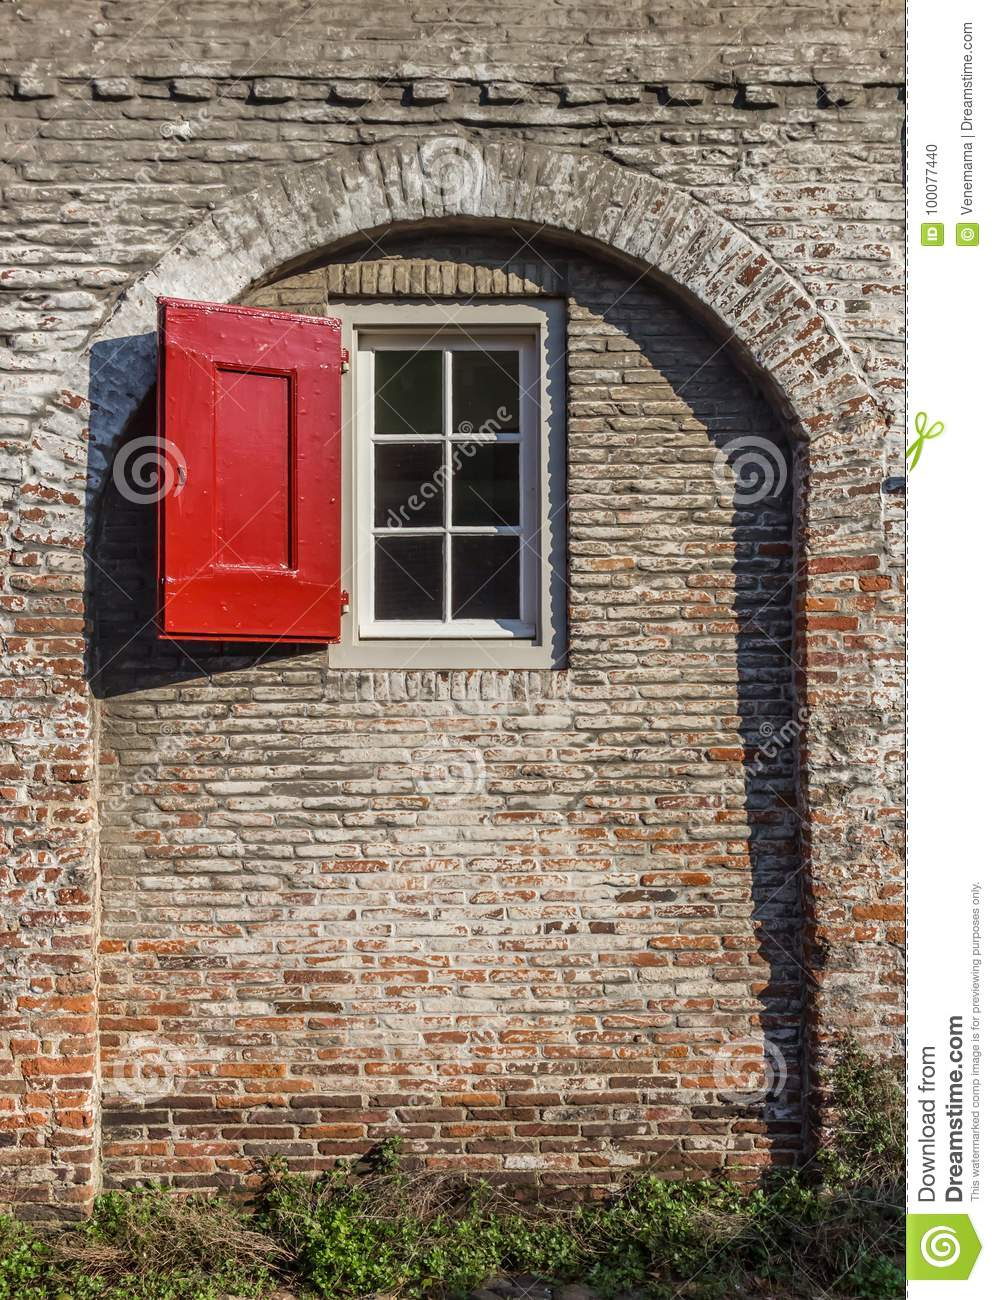 Window with red shutter in the medieval city wall of Amersfoort